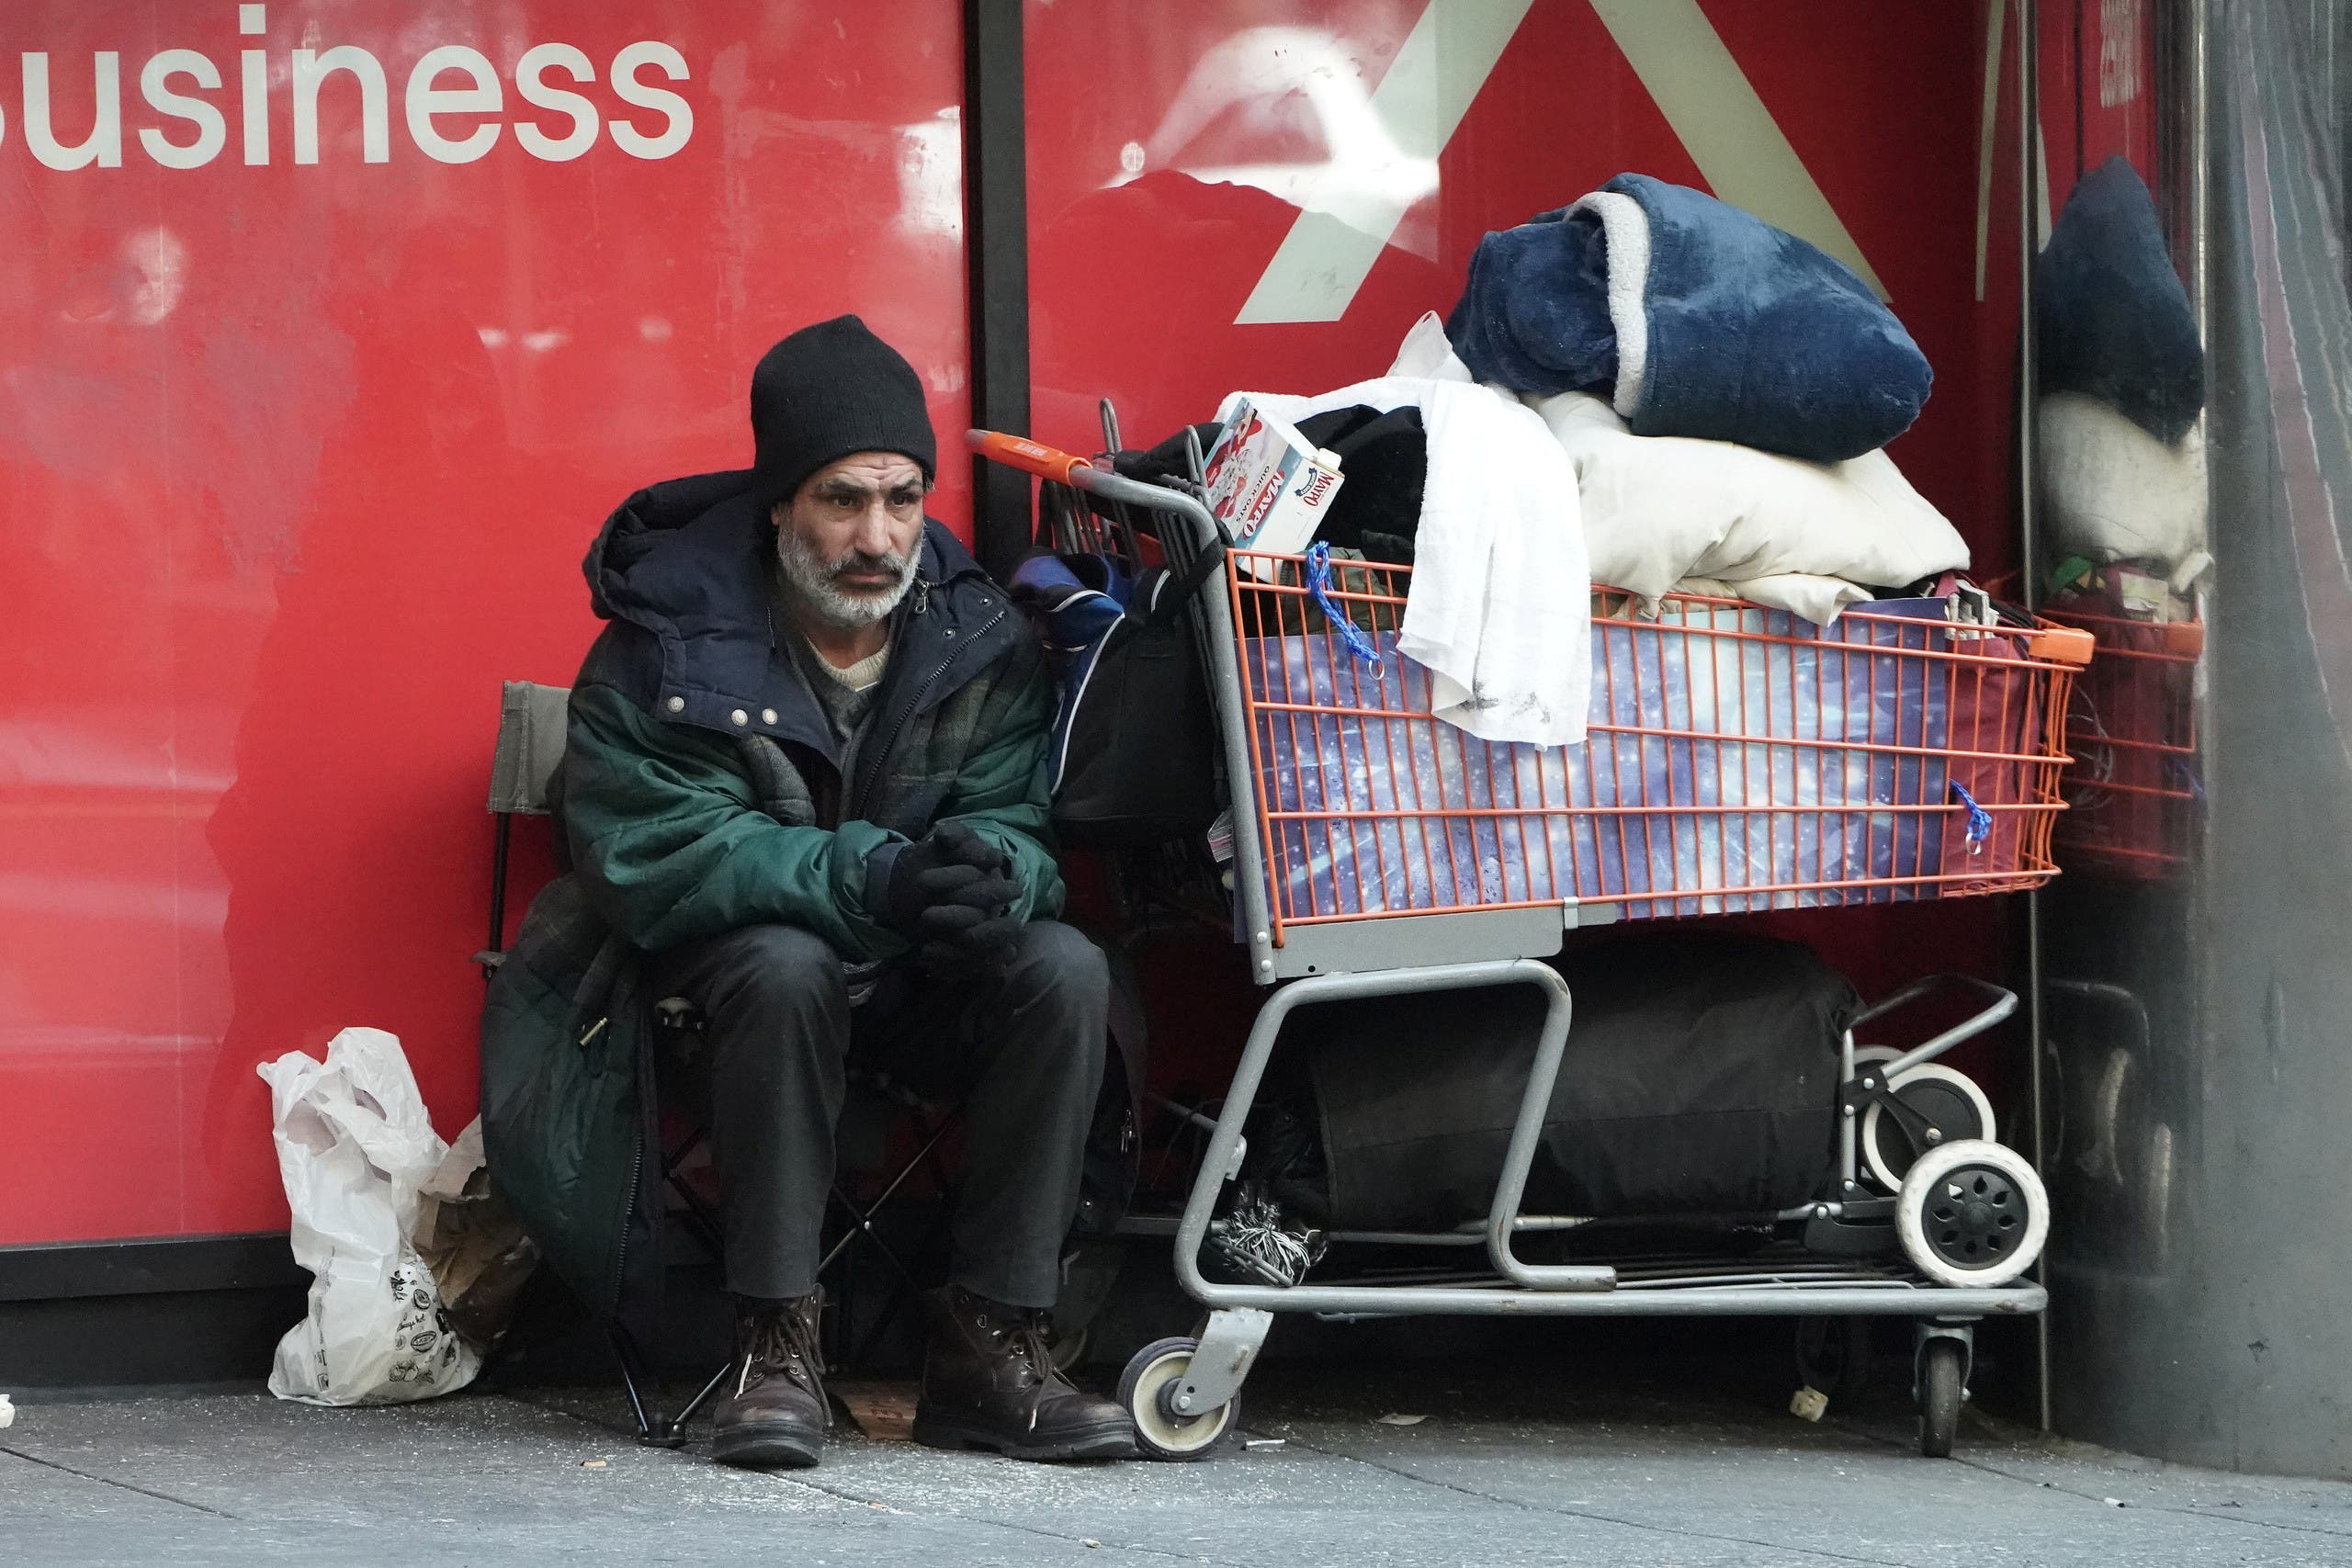 A homeless person sits with his belongings during the outbreak of Coronavirus disease, in the Manhattan borough of New York City on March 26, 2020. (Reuters)